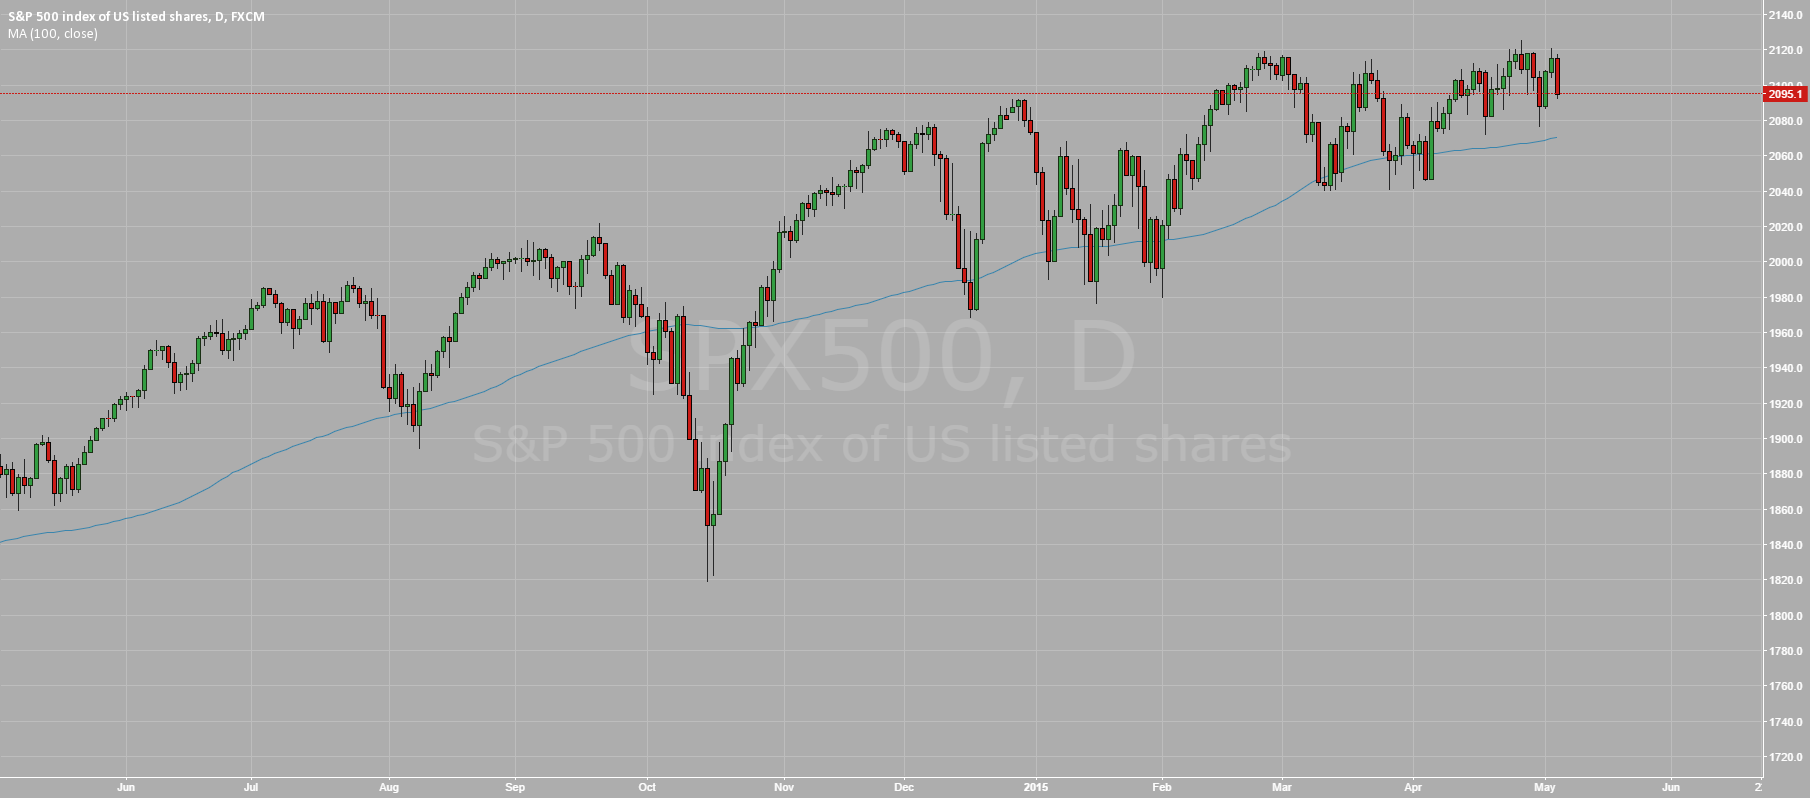 SP500: Waiting NFP